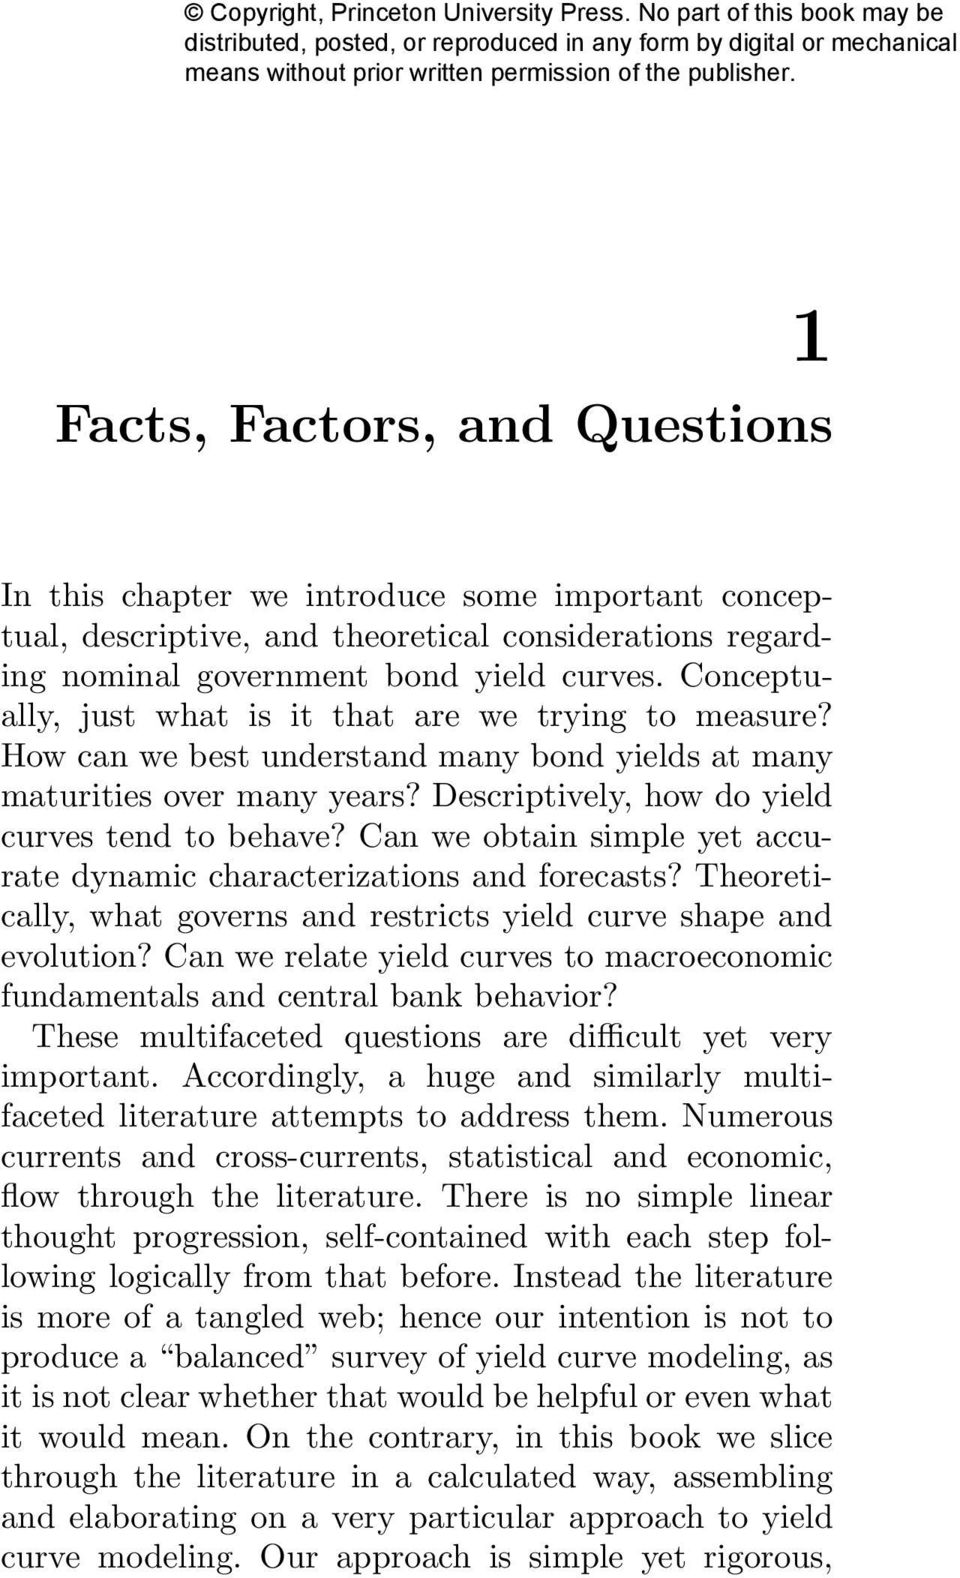 Can we obtain simple yet accurate dynamic characterizations and forecasts? Theoretically, what governs and restricts yield curve shape and evolution?